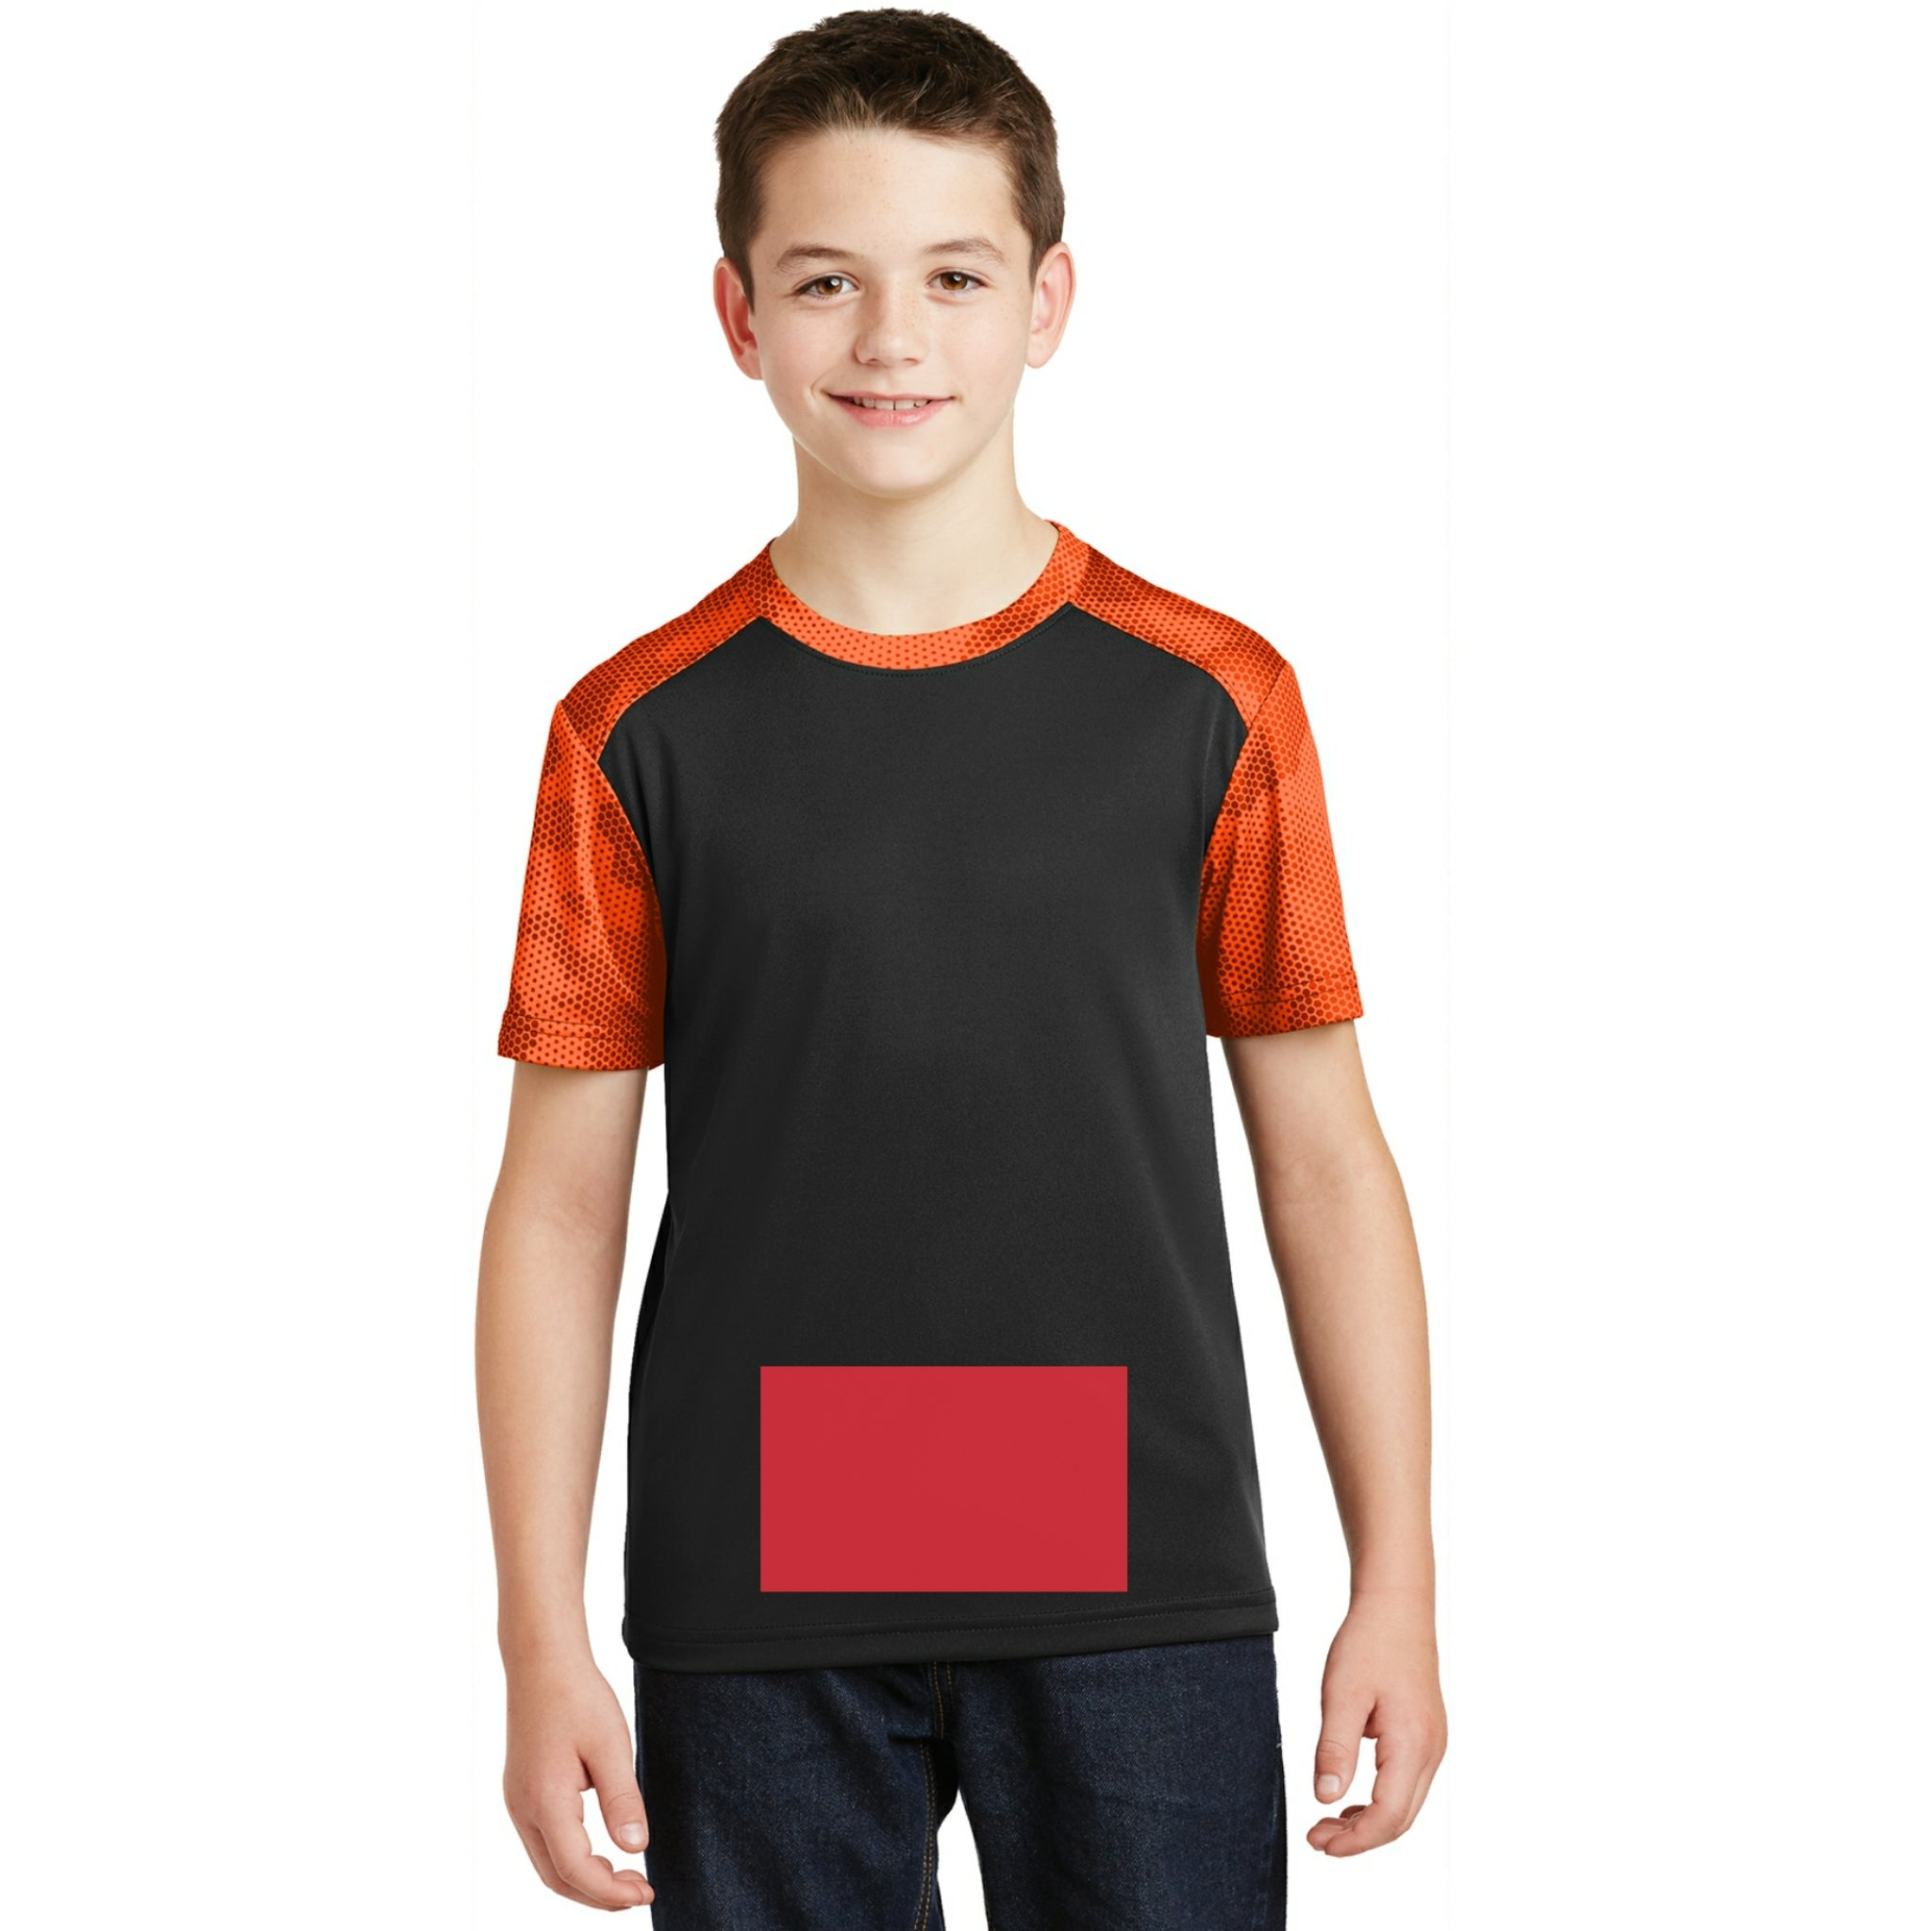 attached front panel camohex colorblock children's tee Black/Orange Camohex